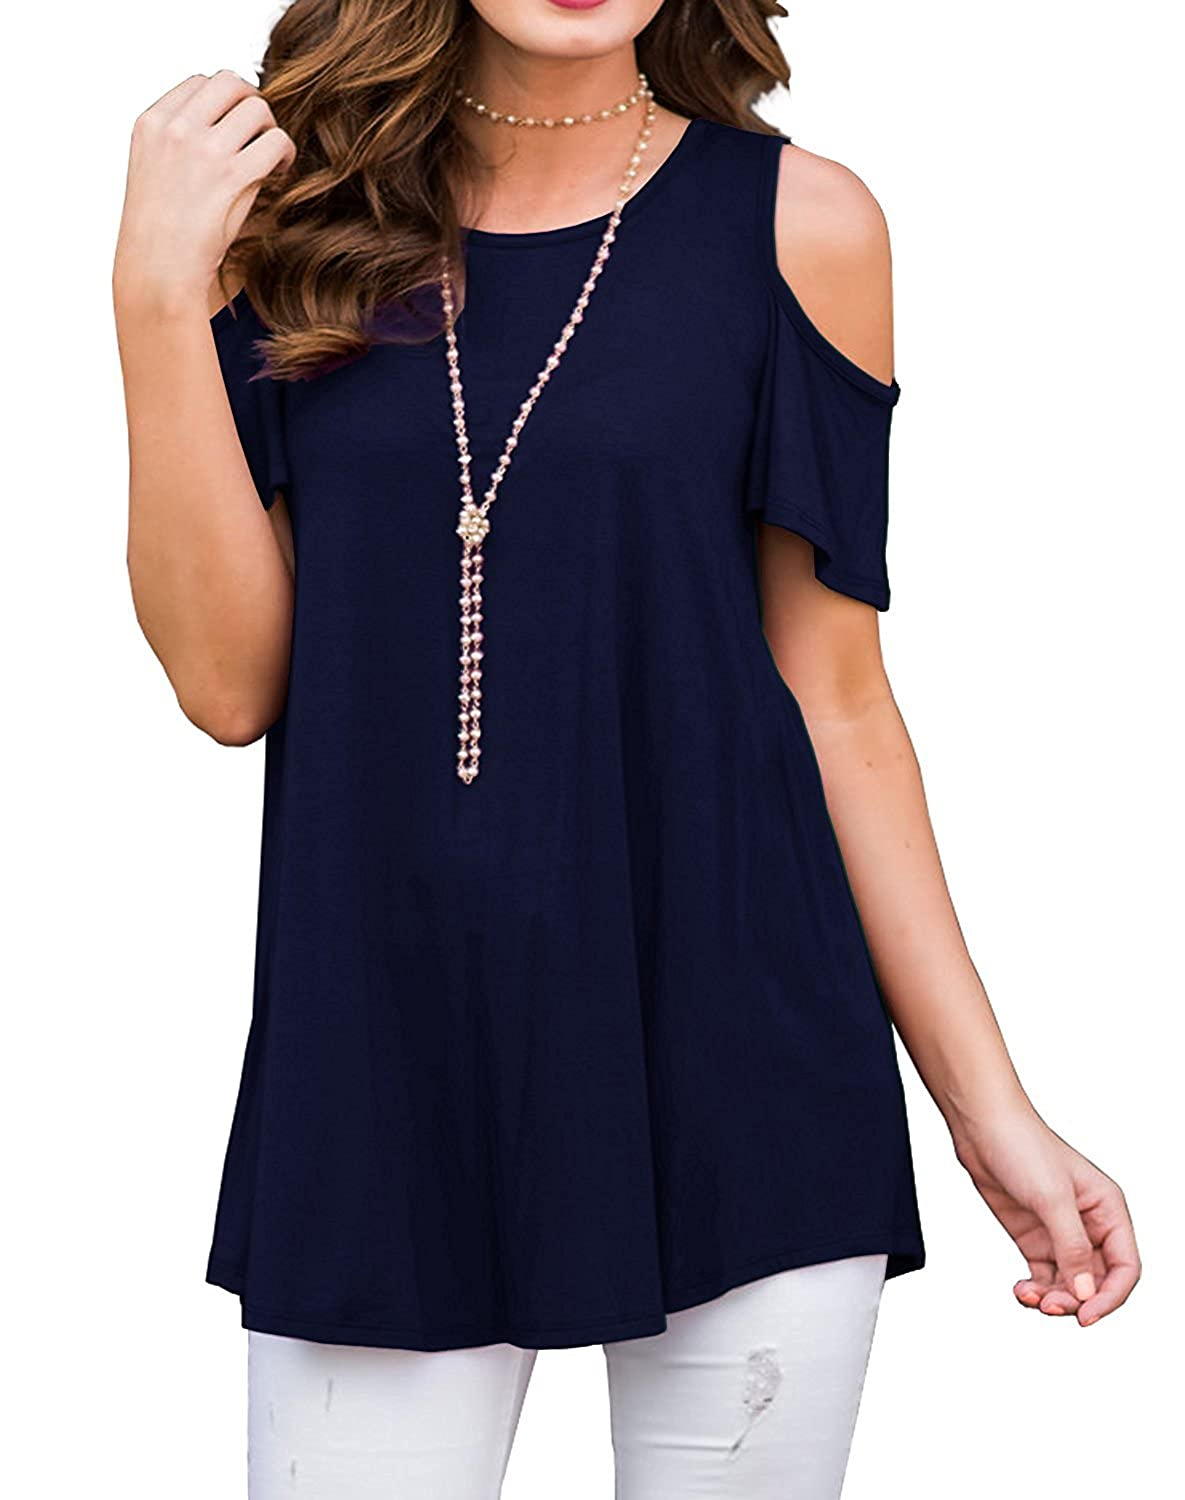 Freemale Women Short Sleeve Cold Shoulder Tops Summer Casual Blouses Round Neck Tunic